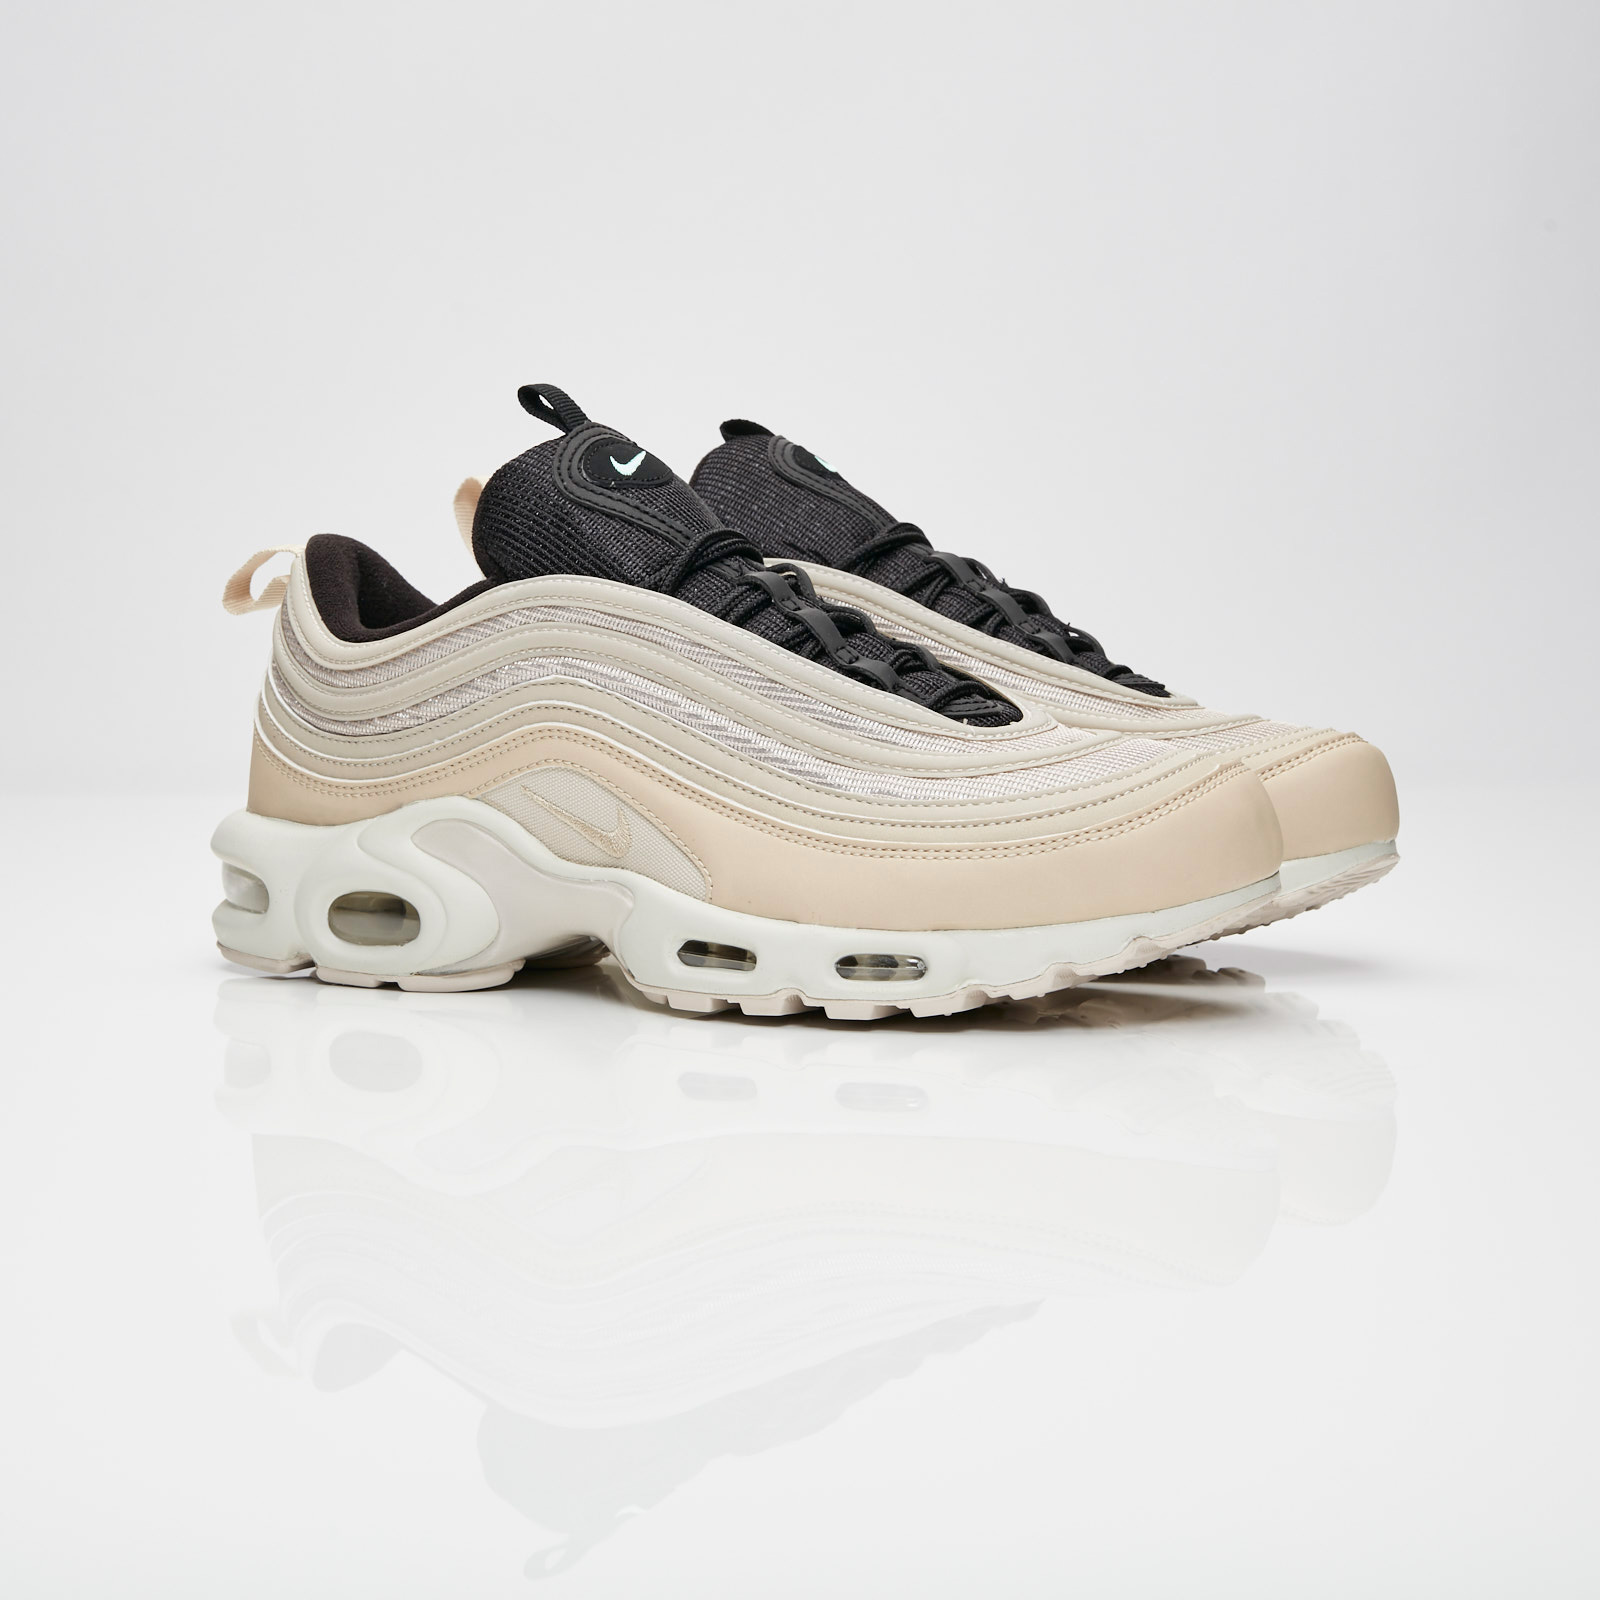 timeless design 91ee1 9a1f8 Nike Air Max Plus 97 - Ah8143-100 - Sneakersnstuff ...